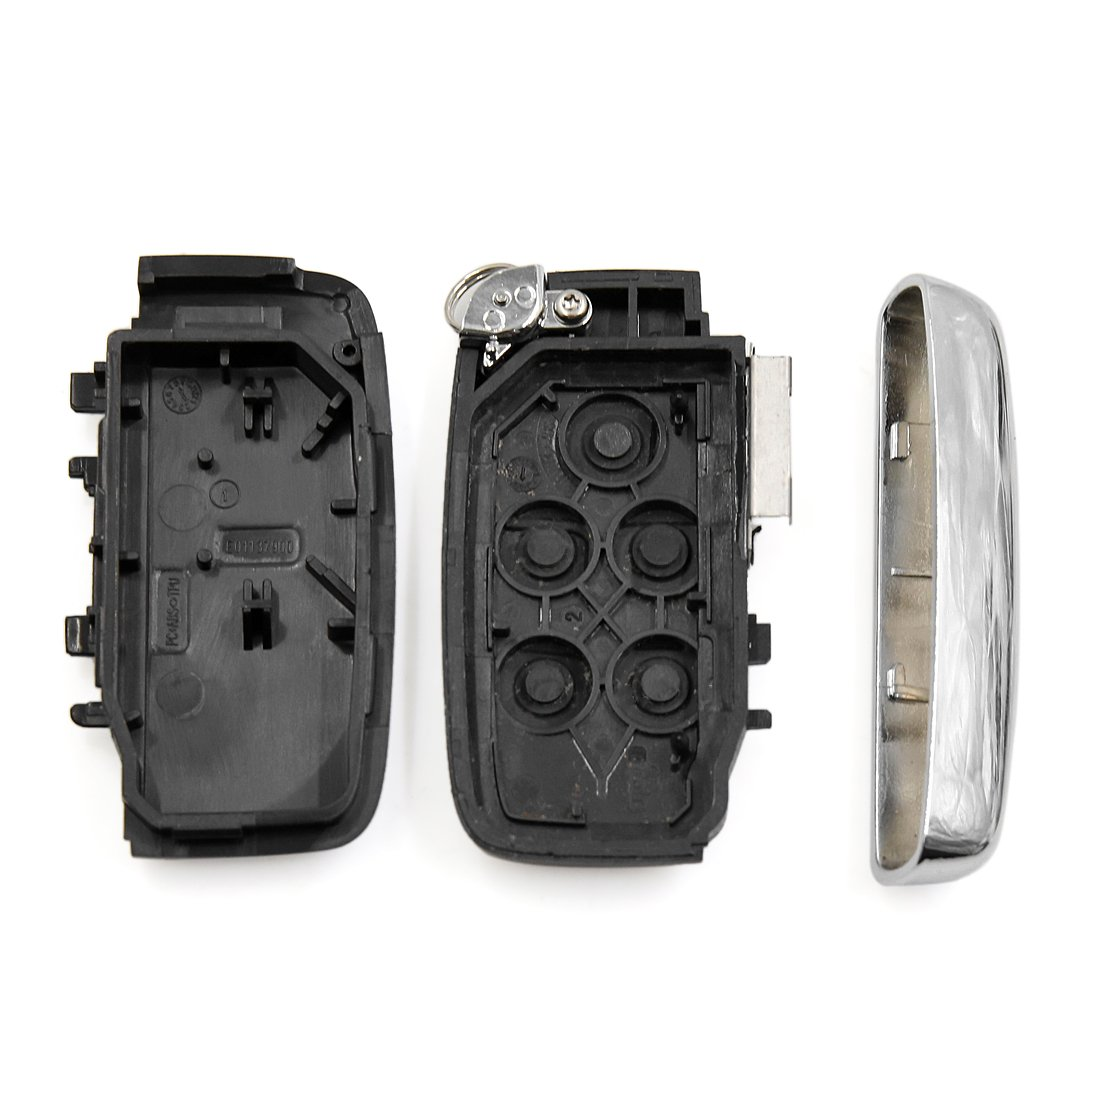 uxcell New 5 Buttons Key Fob Remote Control Case Shell Replacement KOBJTF10A for Range Rover Discovery 4